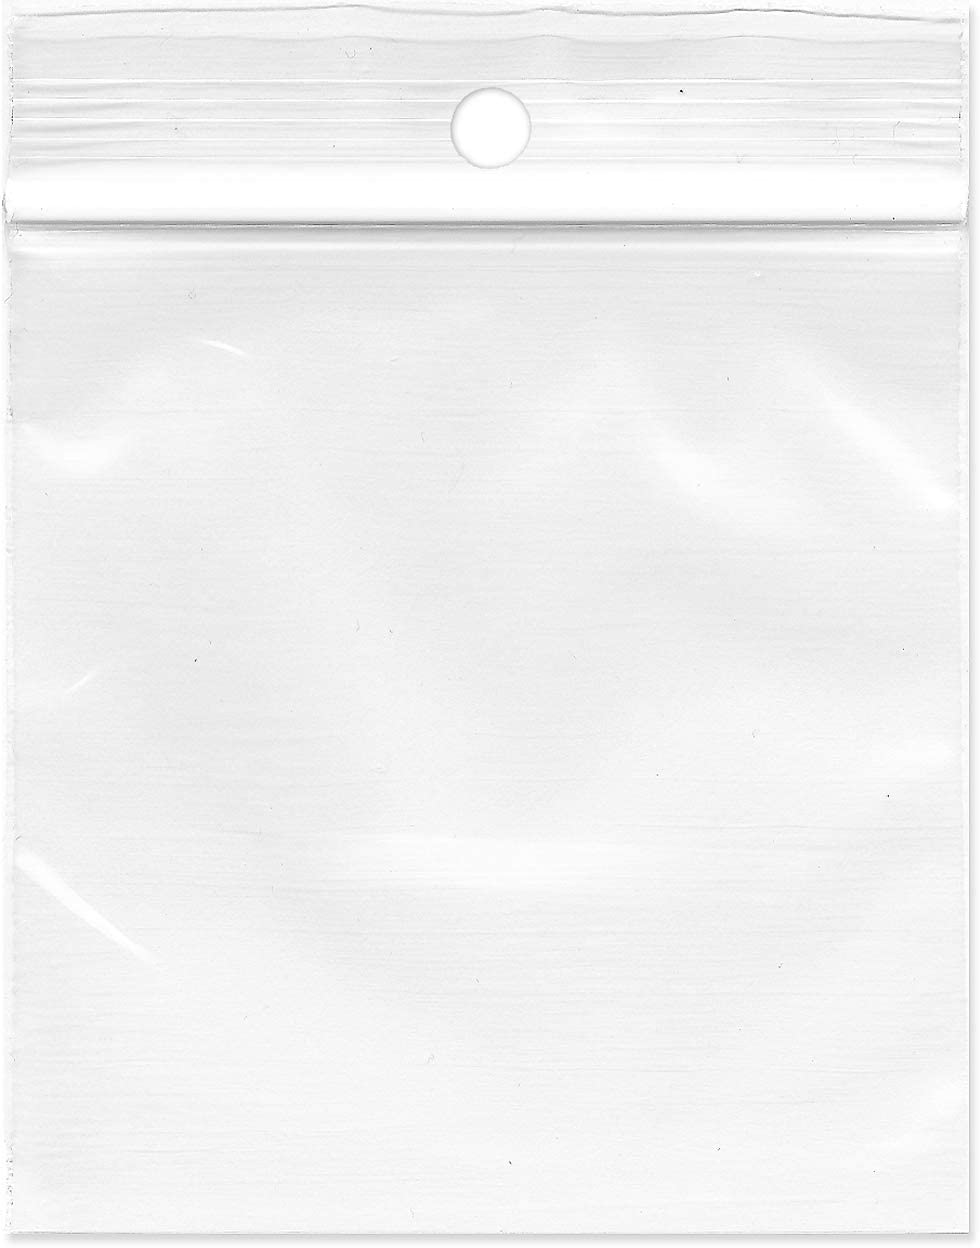 Plymor Zipper Reclosable Plastic Bags Hang-Hole Mil 2 Now on sale with Translated 3